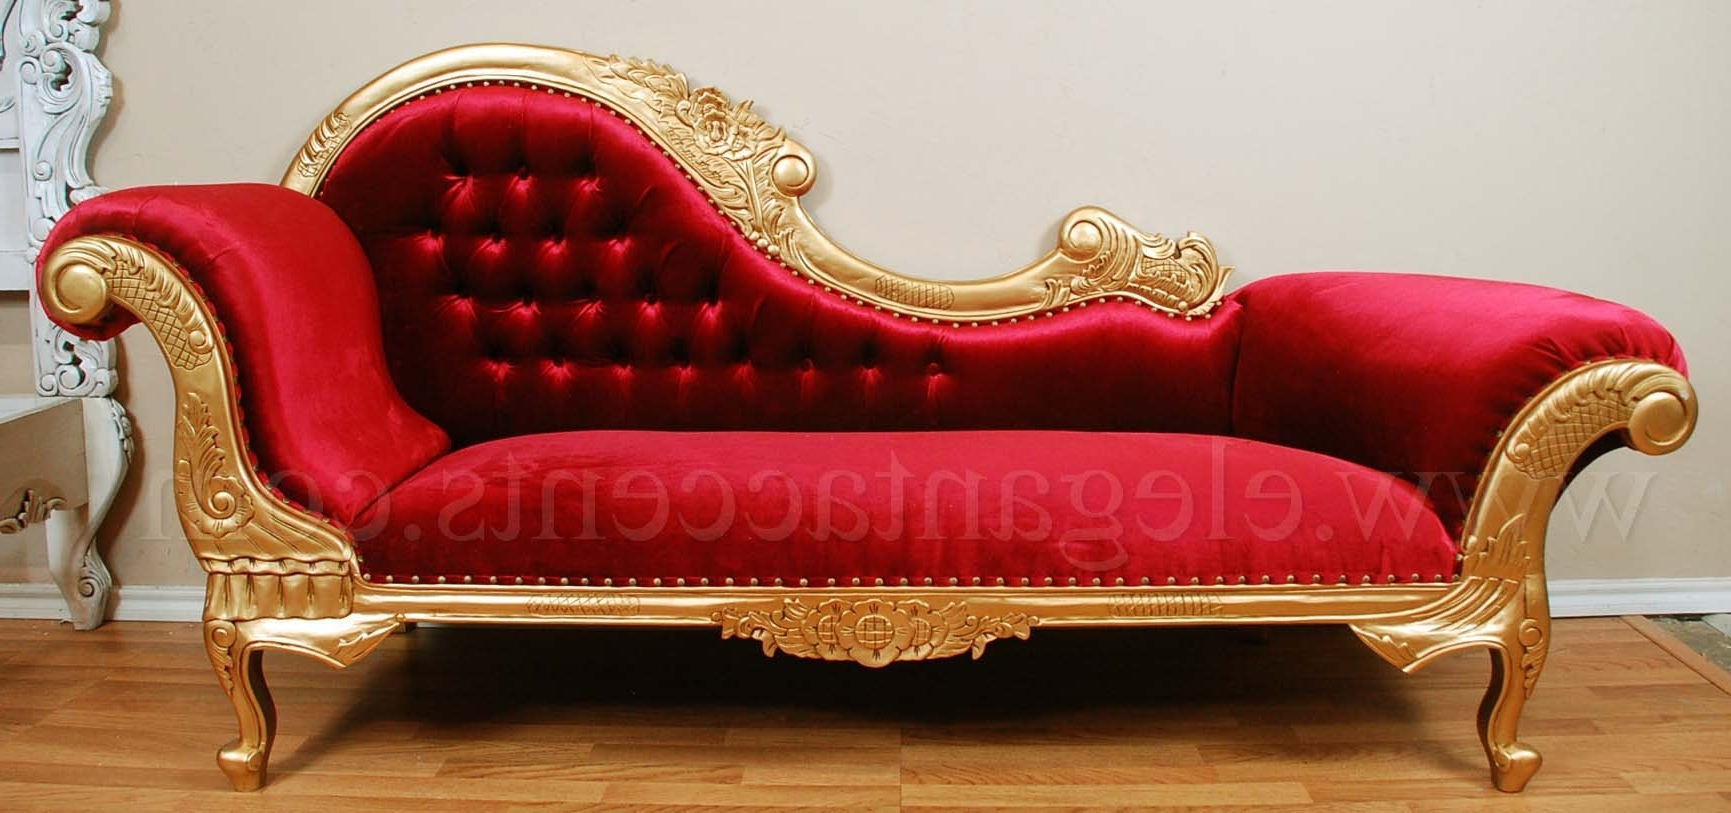 2017 Victorian Chaise Lounges Throughout Impressive On Victorian Chaise Lounge With Victorian Chaise Gold (View 1 of 15)